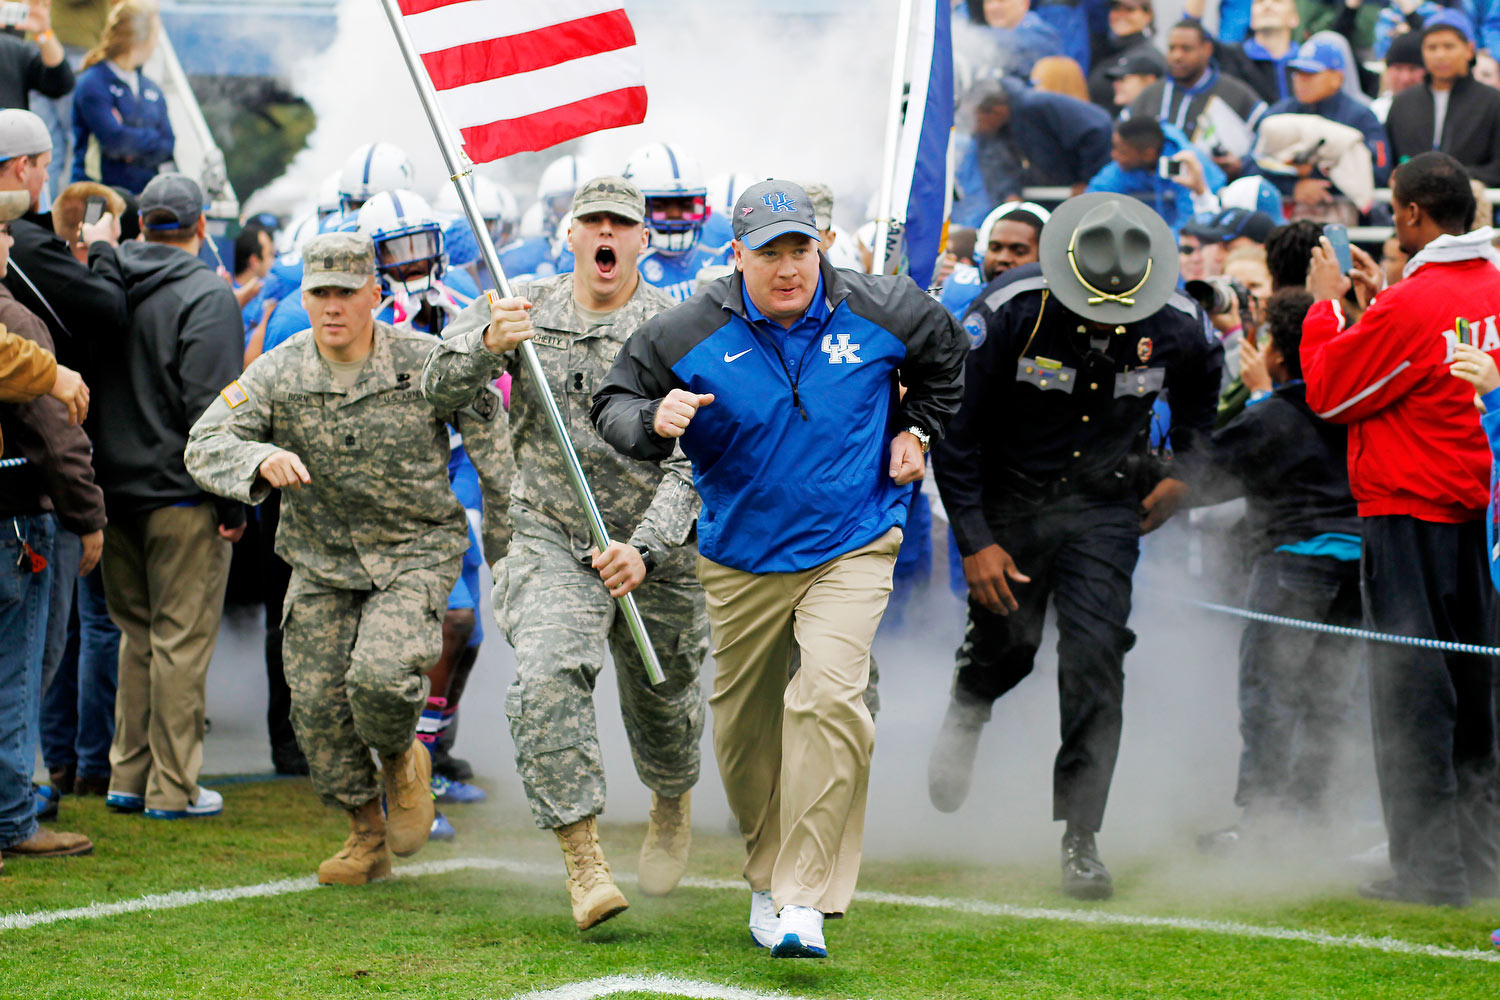 Coach Stoops runs out onto the field ahead of two National Guardsmen in uniform, one holding a flag, as well as another uniformed person. The football team is behind them.